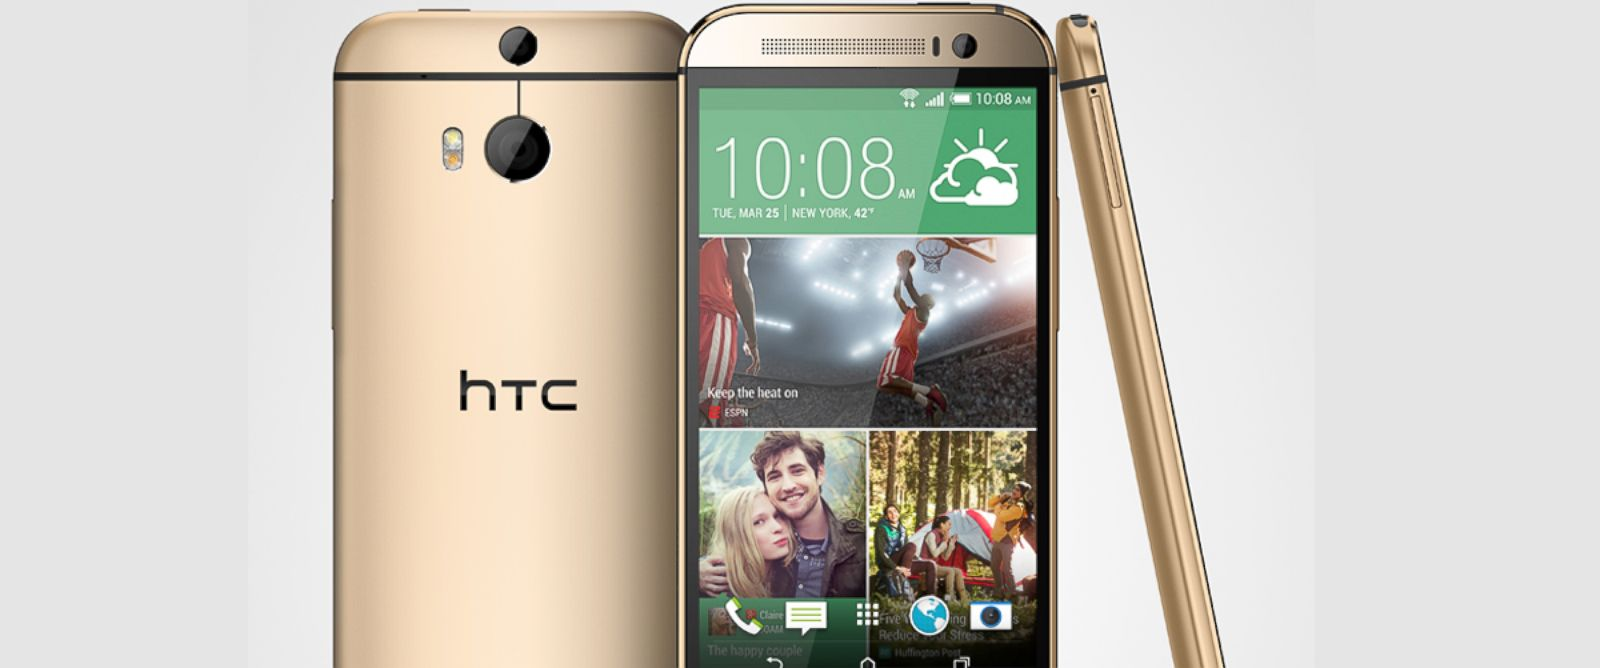 PHOTO: The new HTC One smartphone.